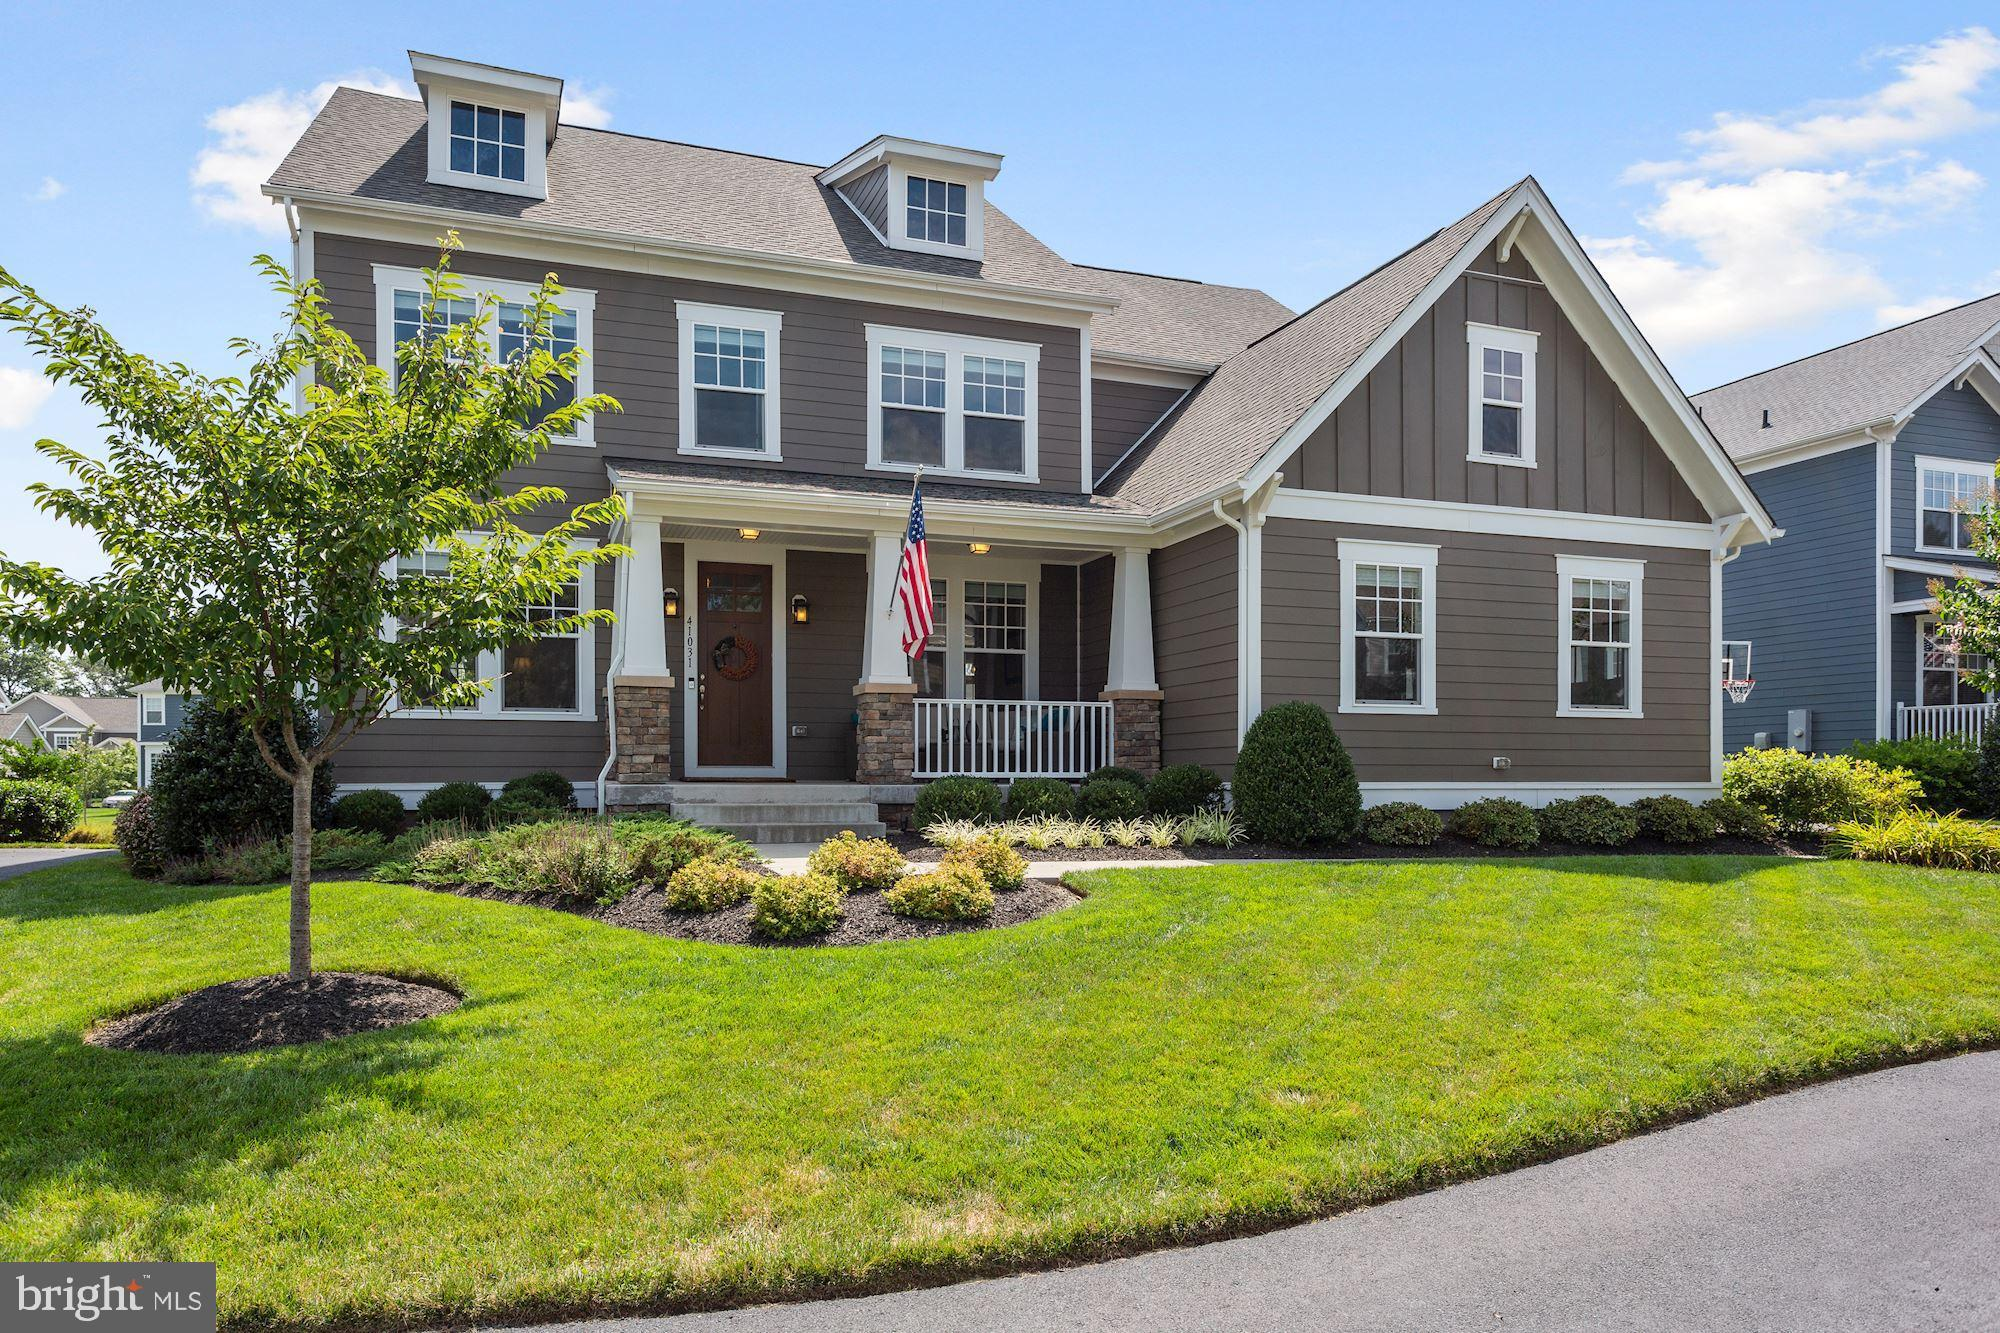 Welcome to this ENERGY STAR compliant home built by Beazer Homes in sought after The Grove at Willow